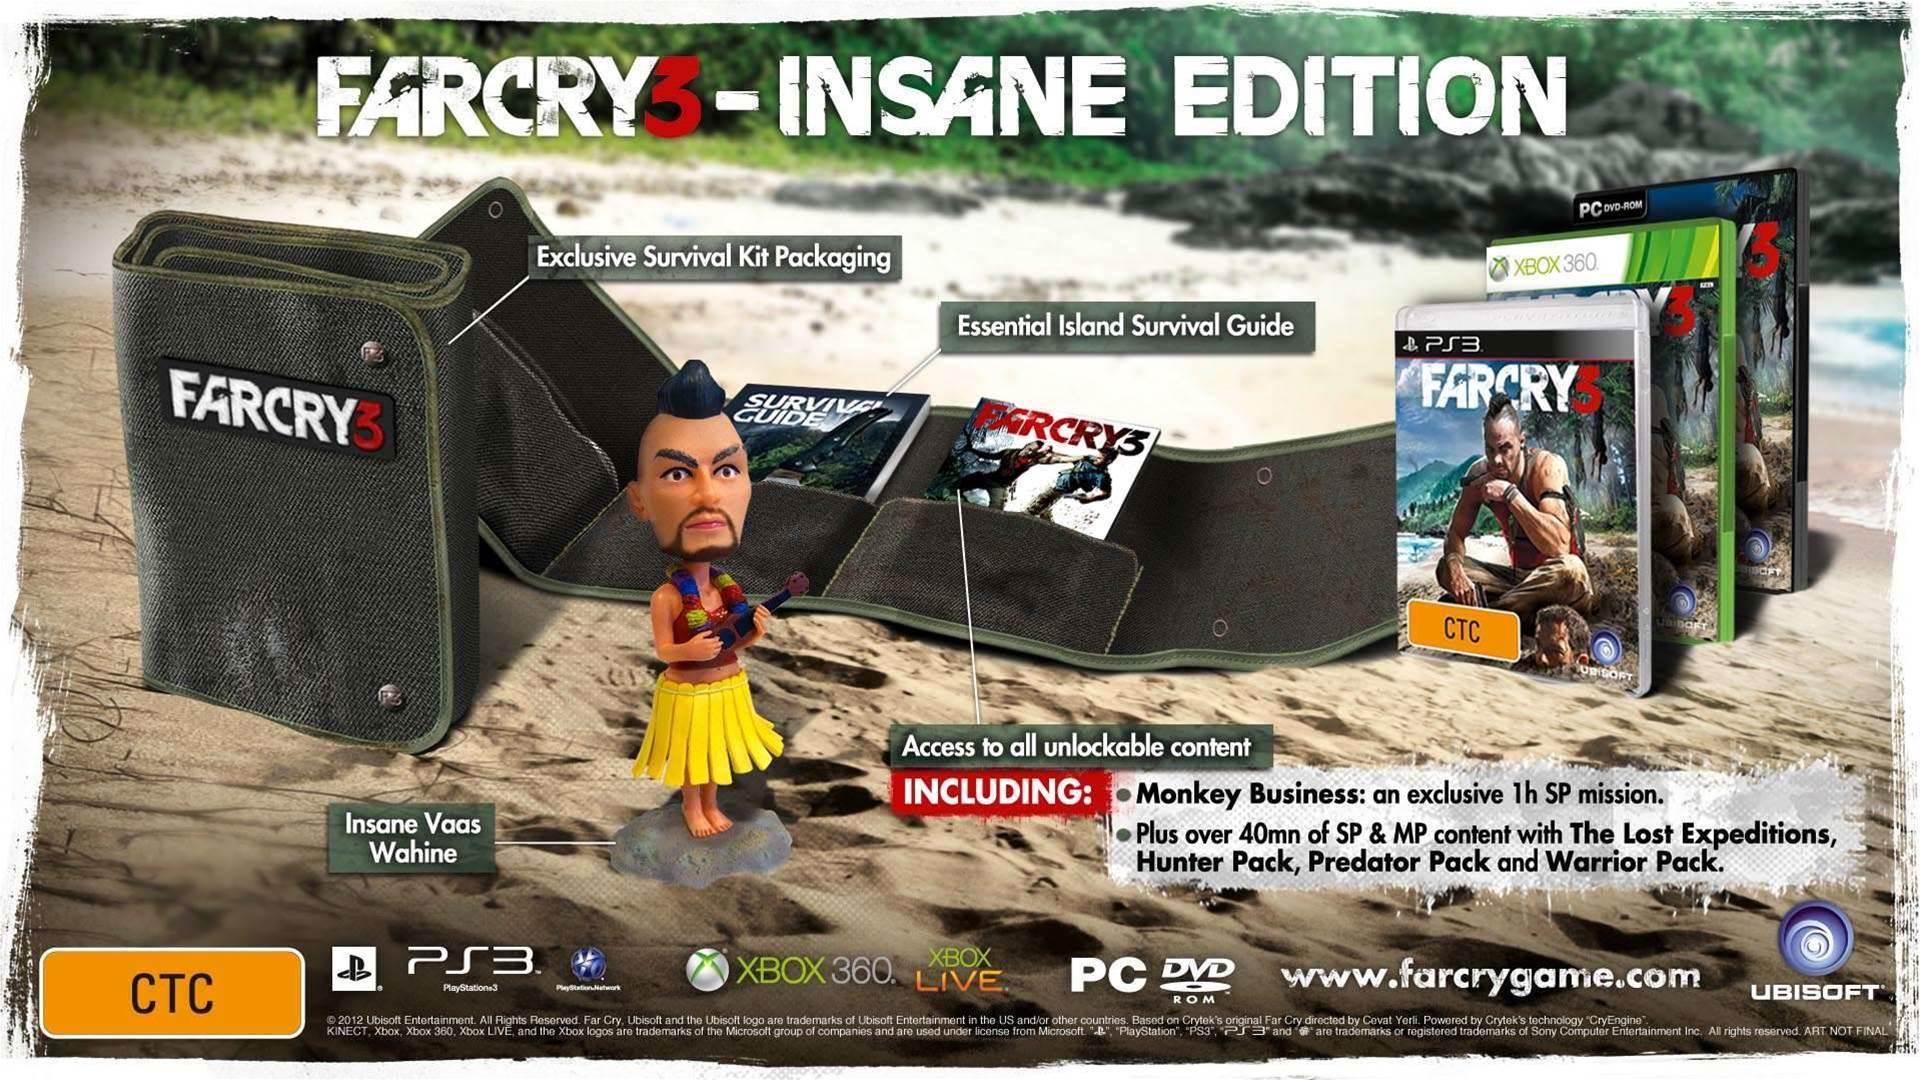 Even the Far Cry 3 Insane Edition is, well, INSANE